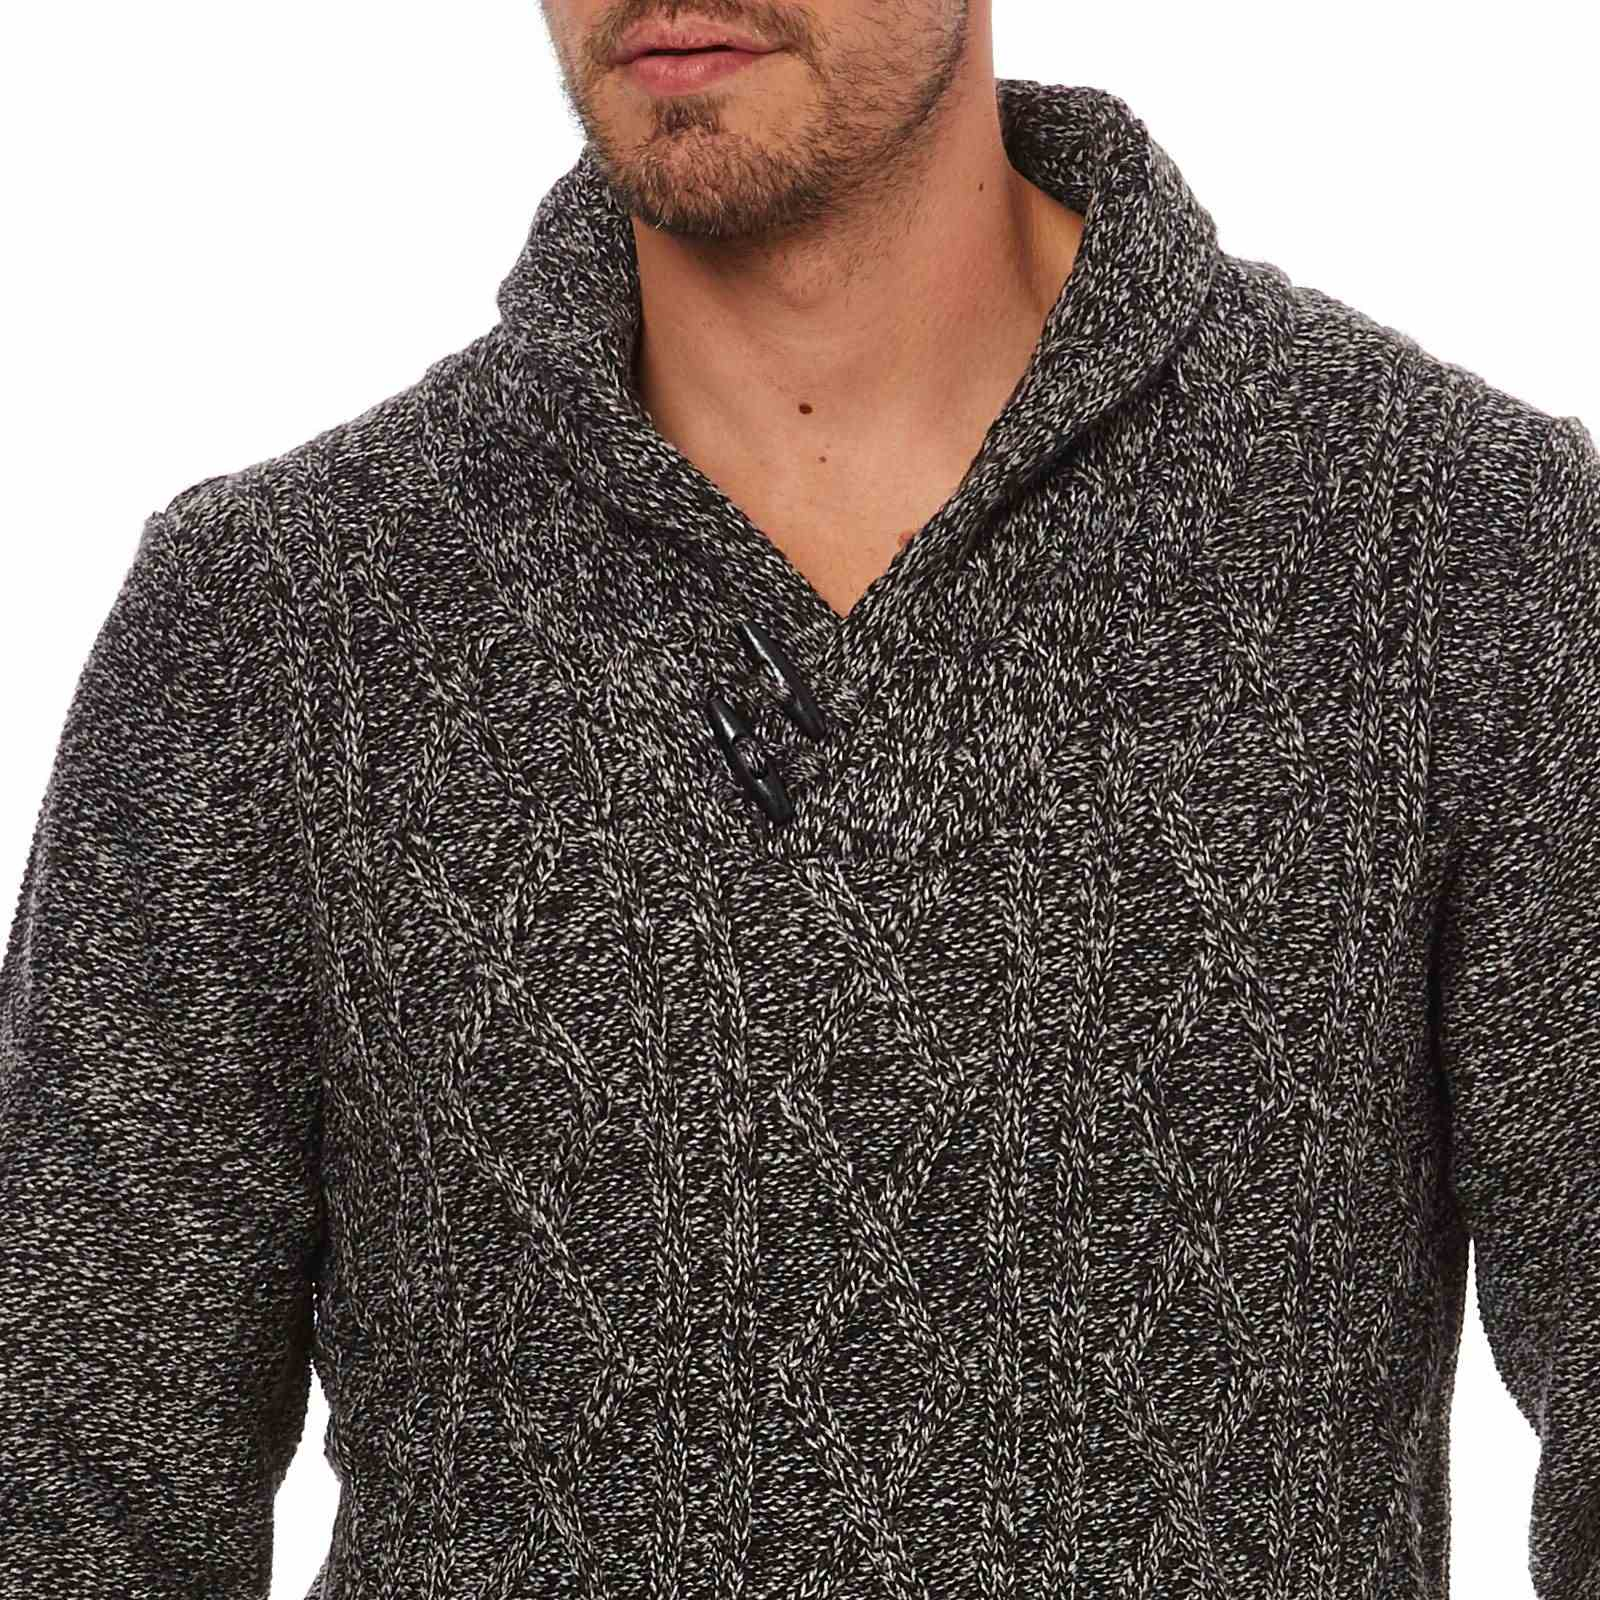 26 Rms Rms 26 PullAnthracite Homme V tshdxCQrB